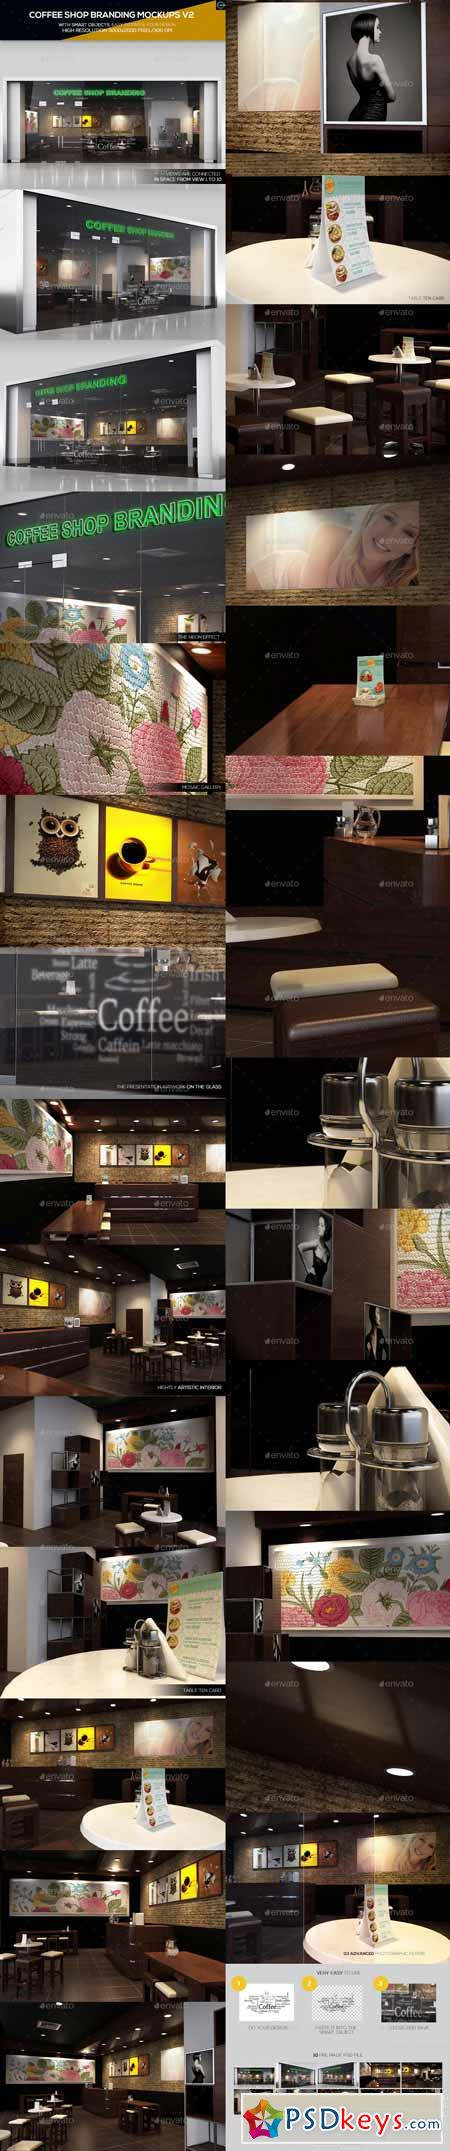 Coffee shop branding mockups v2 11183371 free download for Coffee shop design software